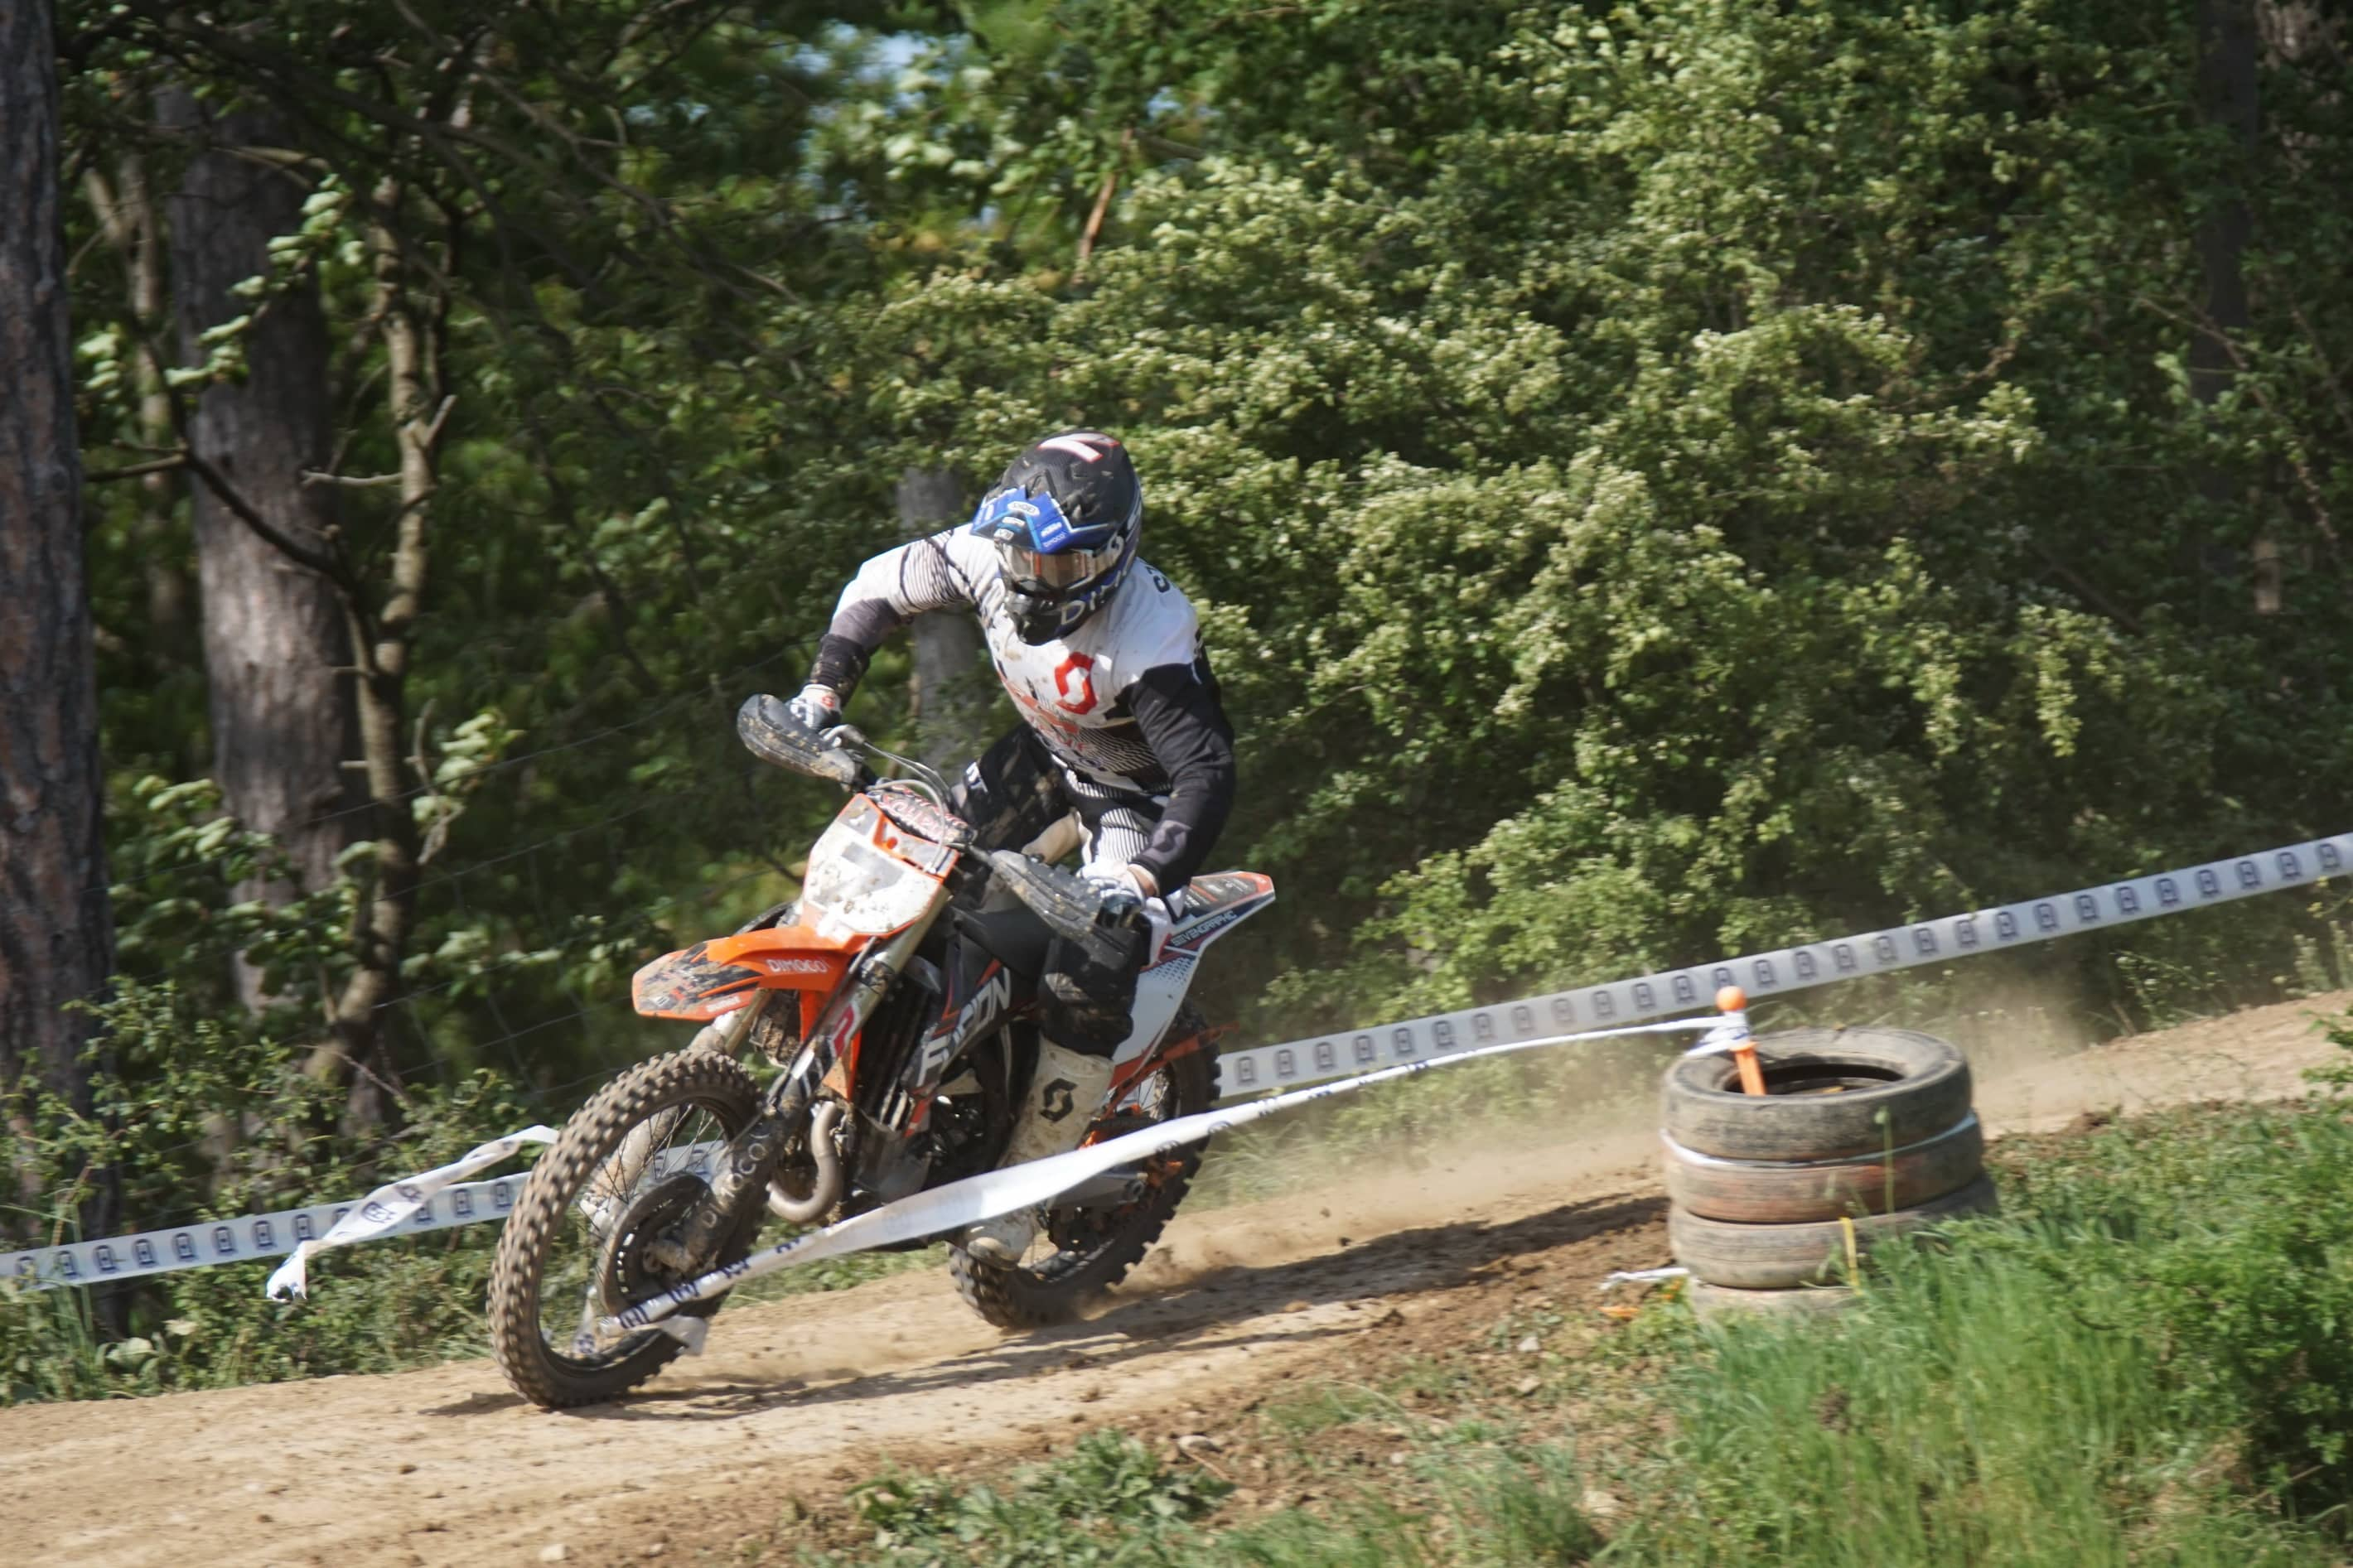 DSC 900_Moto Cross Sittendorf Teil1 am 29.04.2018